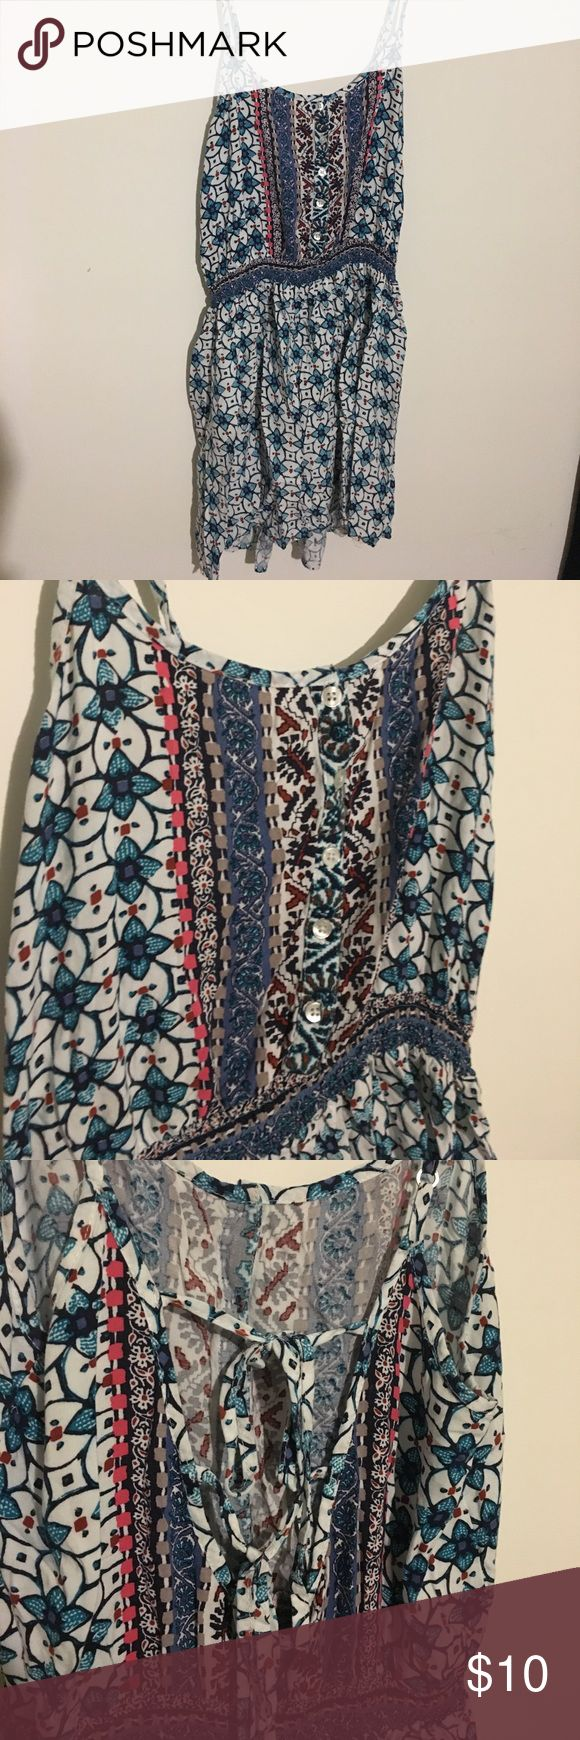 Boho pattern dress Boho pattern dress, short in length, thin float material, stringy back and button up front American Eagle Outfitters Dresses